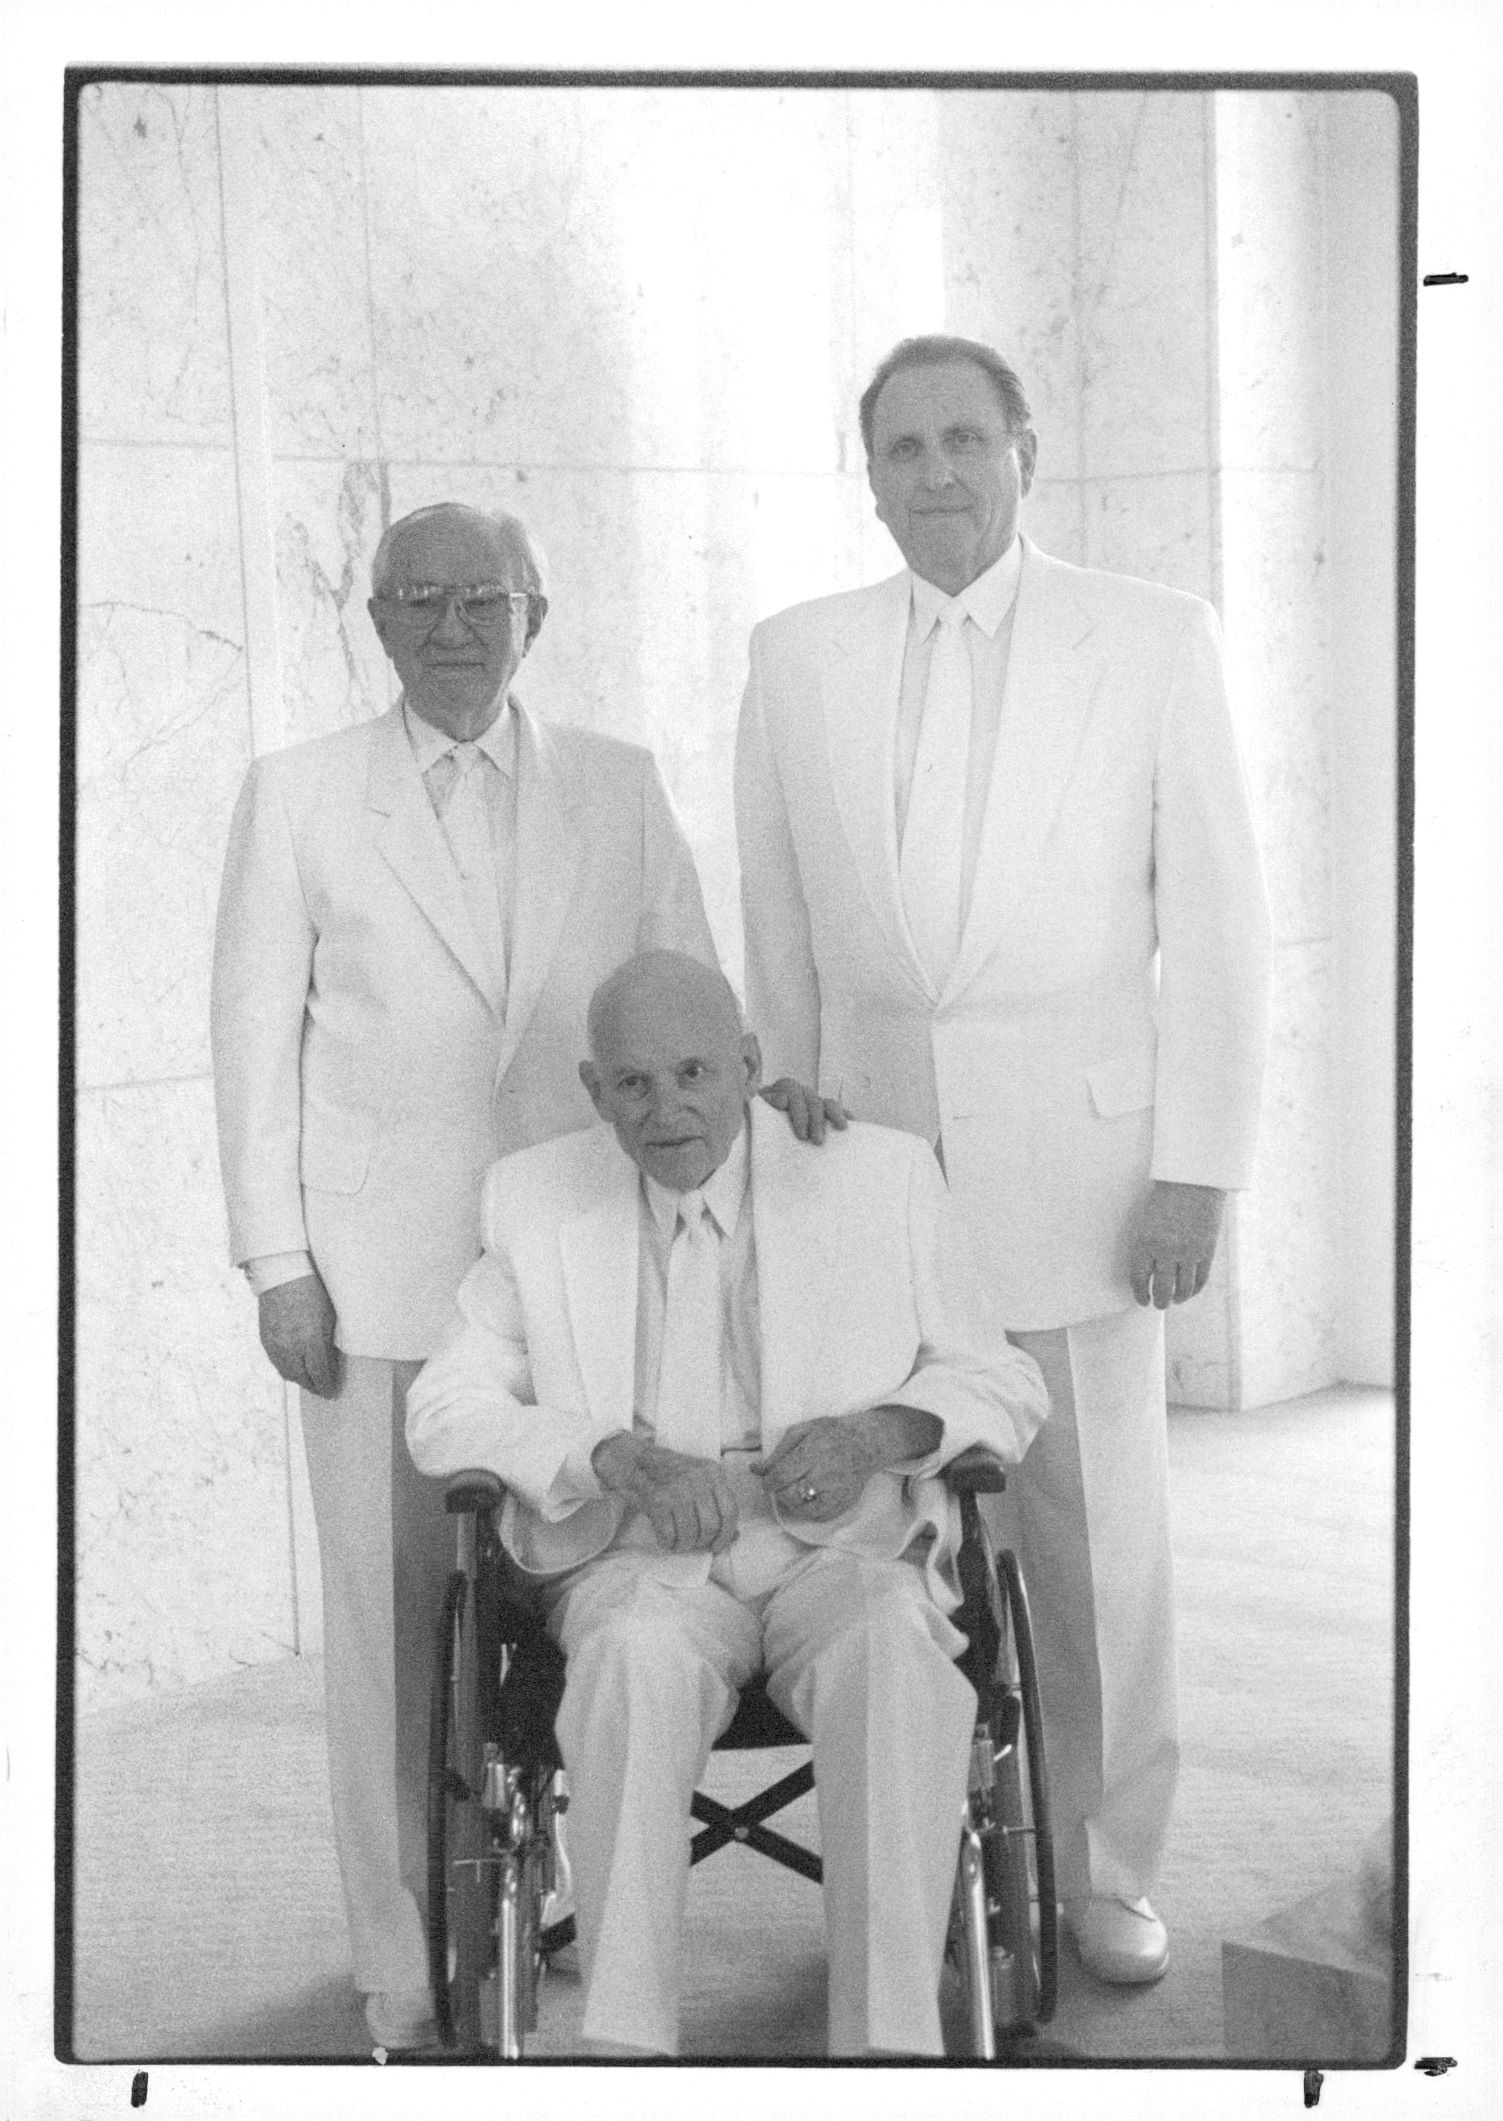 (Tribune file photo) Left to right, Gordon B. Hinckley, President Howard W. Hunter, and Thomas S. Monson at the Bountiful Utah Temple on Jan. 10, 1995.